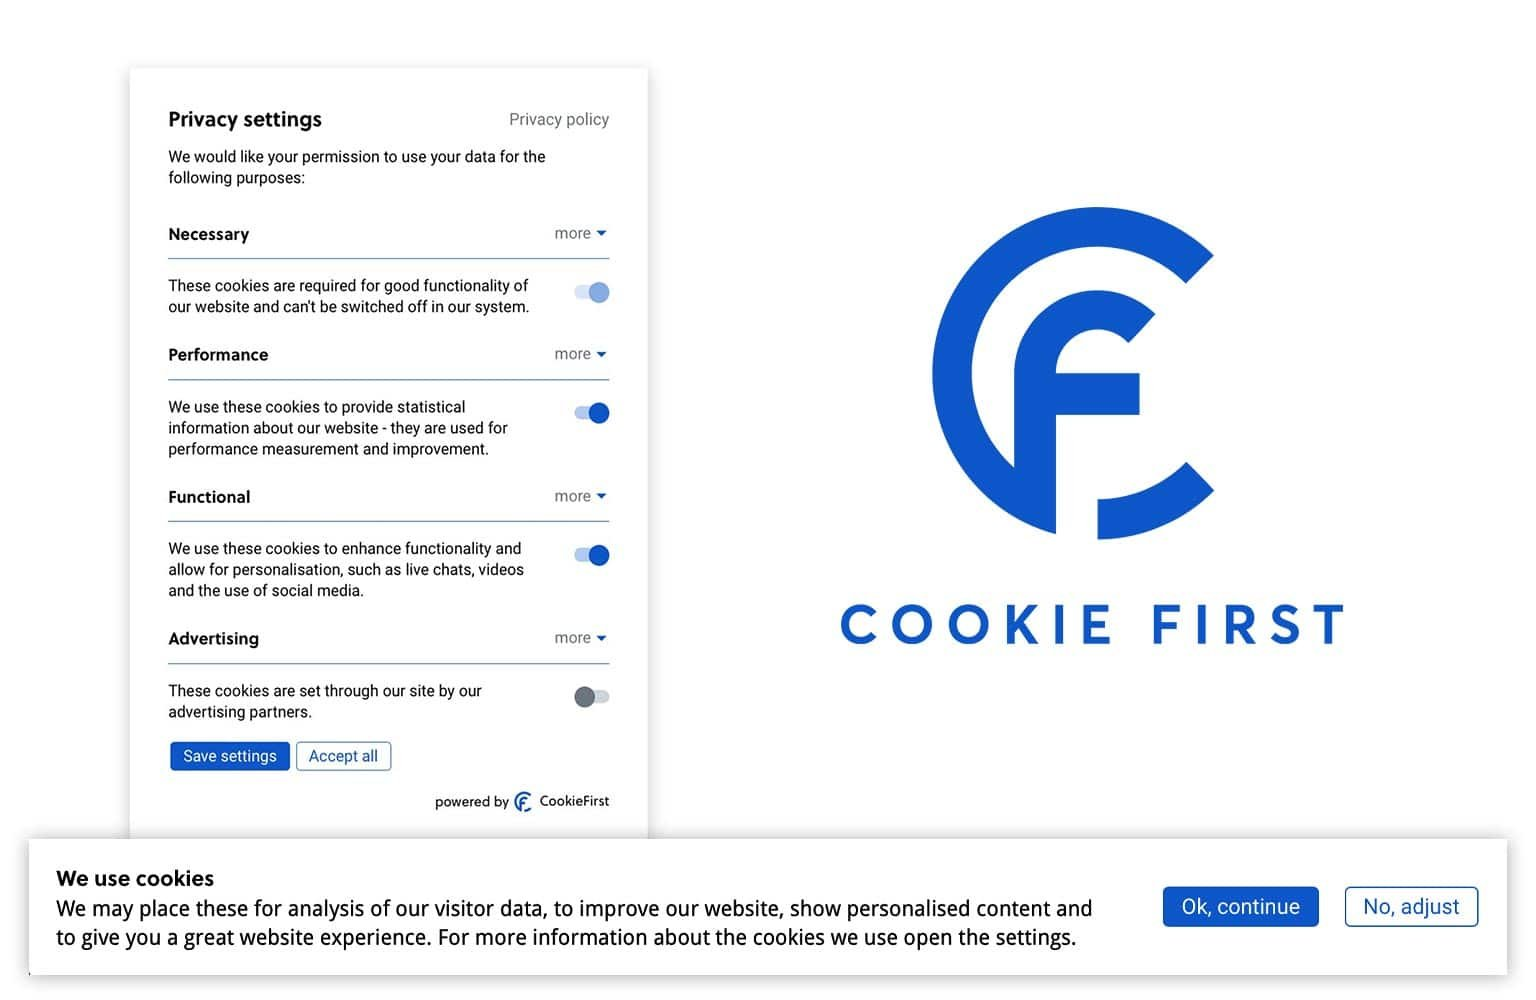 Cookie notice - CookieFirst provides ePrivacy, GDPR, CCPA and LGPD compliant cookie consent